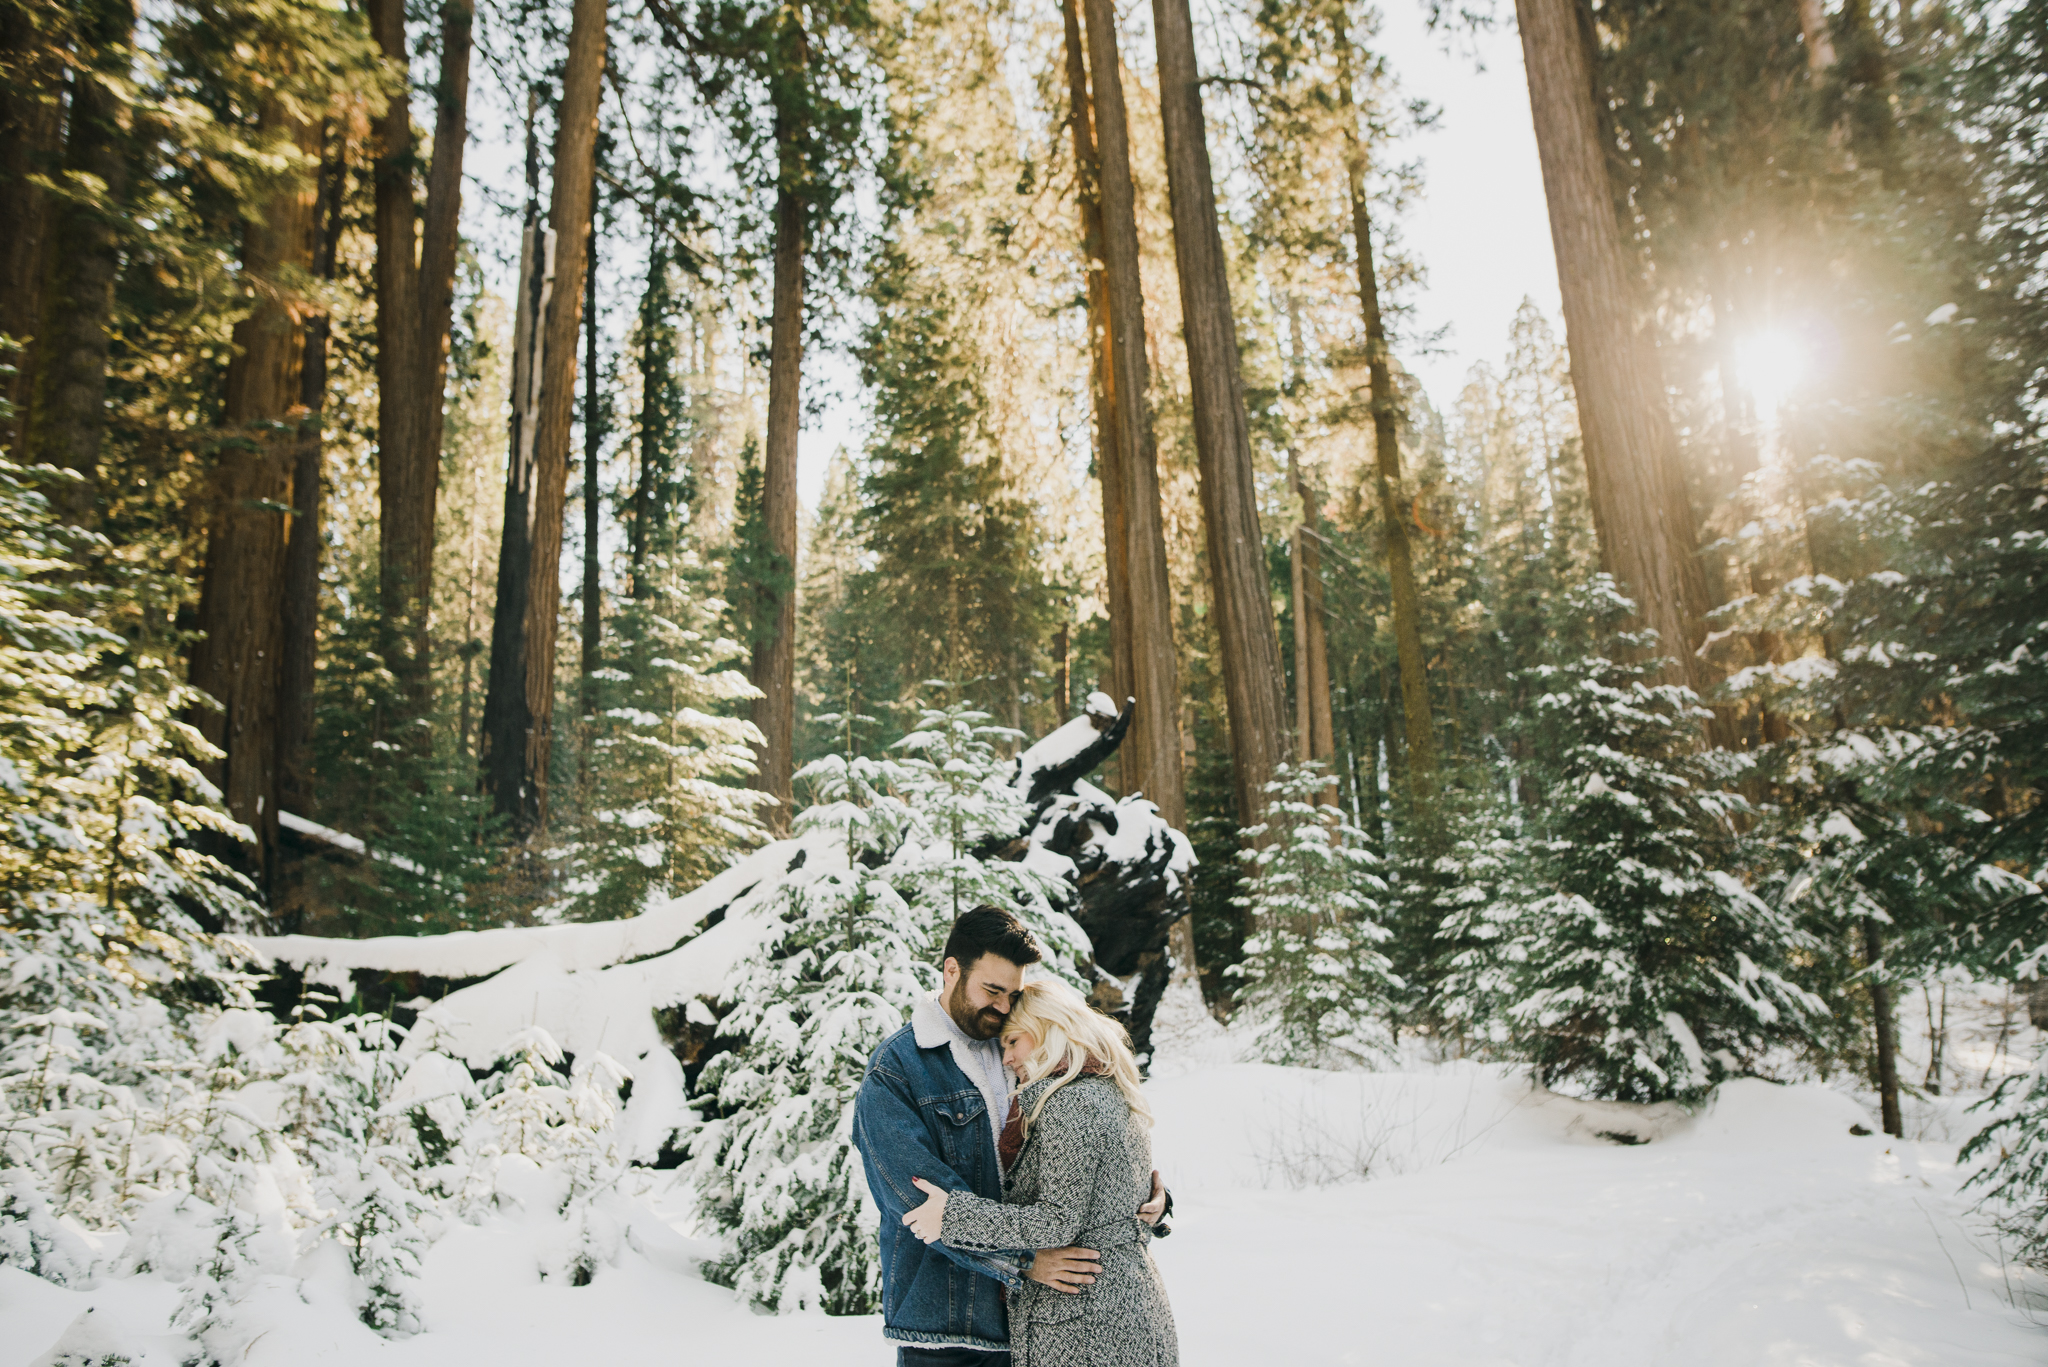 ©Isaiah-&-Taylor-Photography---George-&-Alyssa-Engagement---Sequoia-National-Park,-California-27.jpg